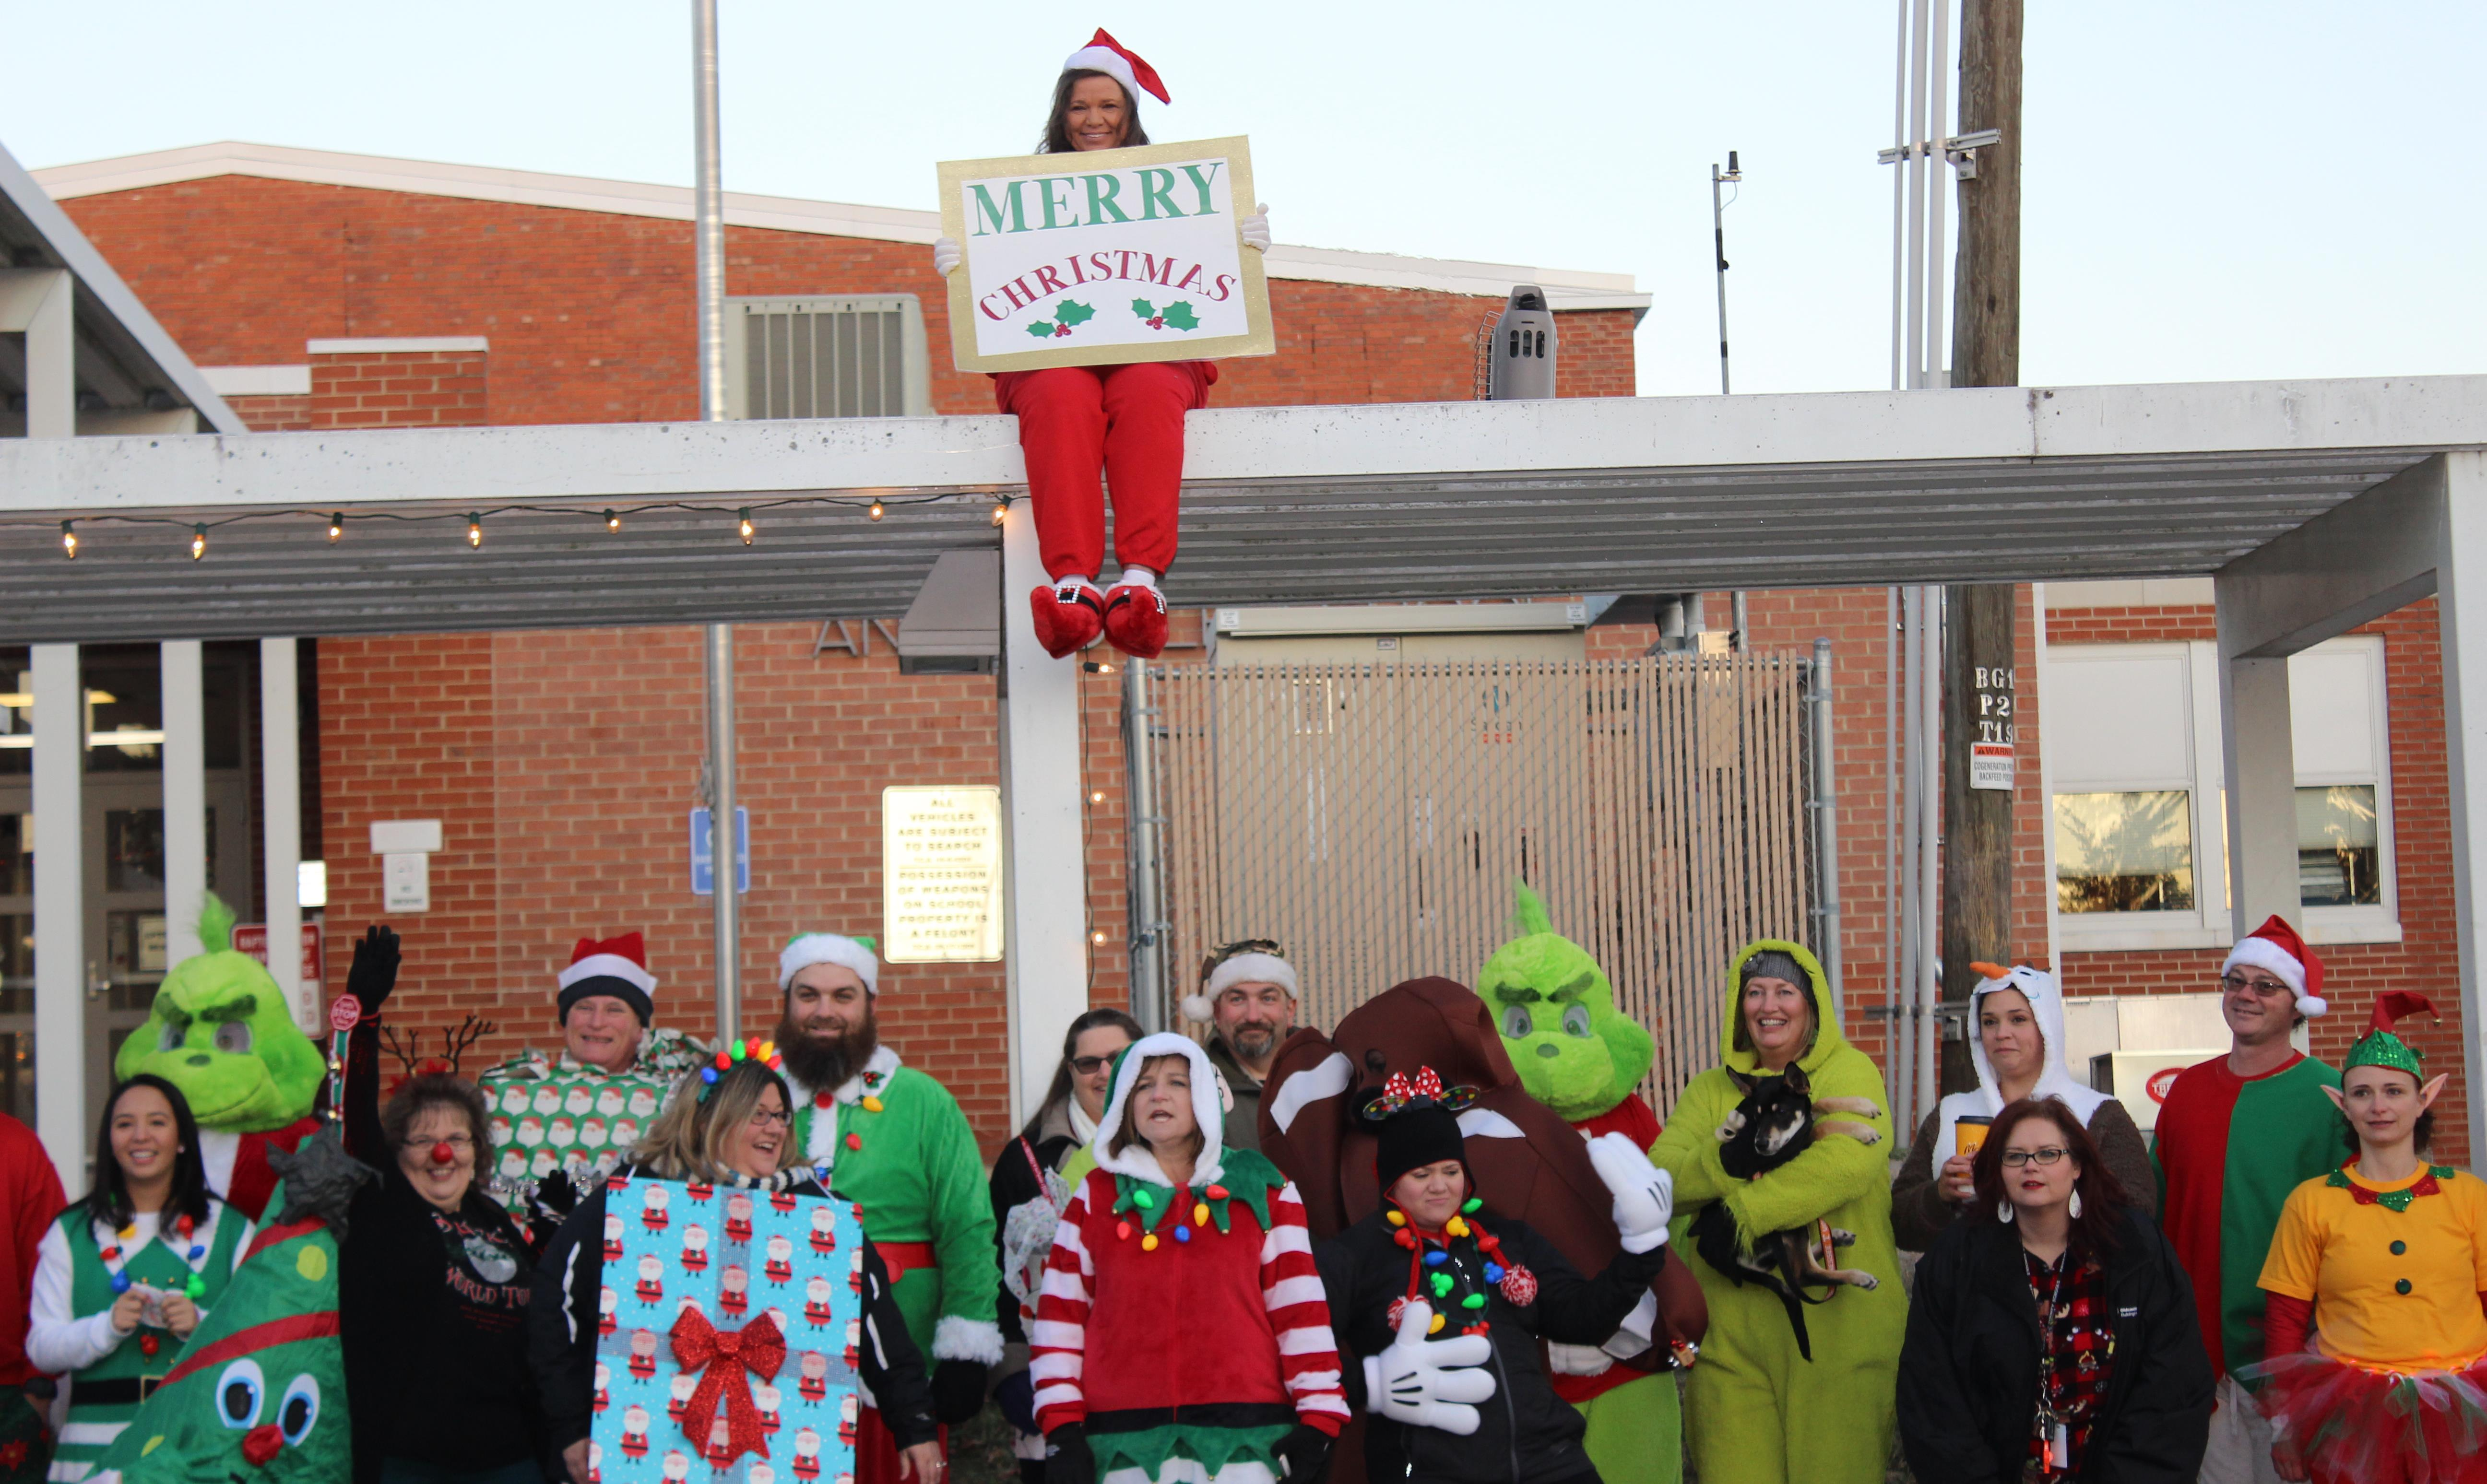 Teachers in costume greeting students outside before Christmas Break